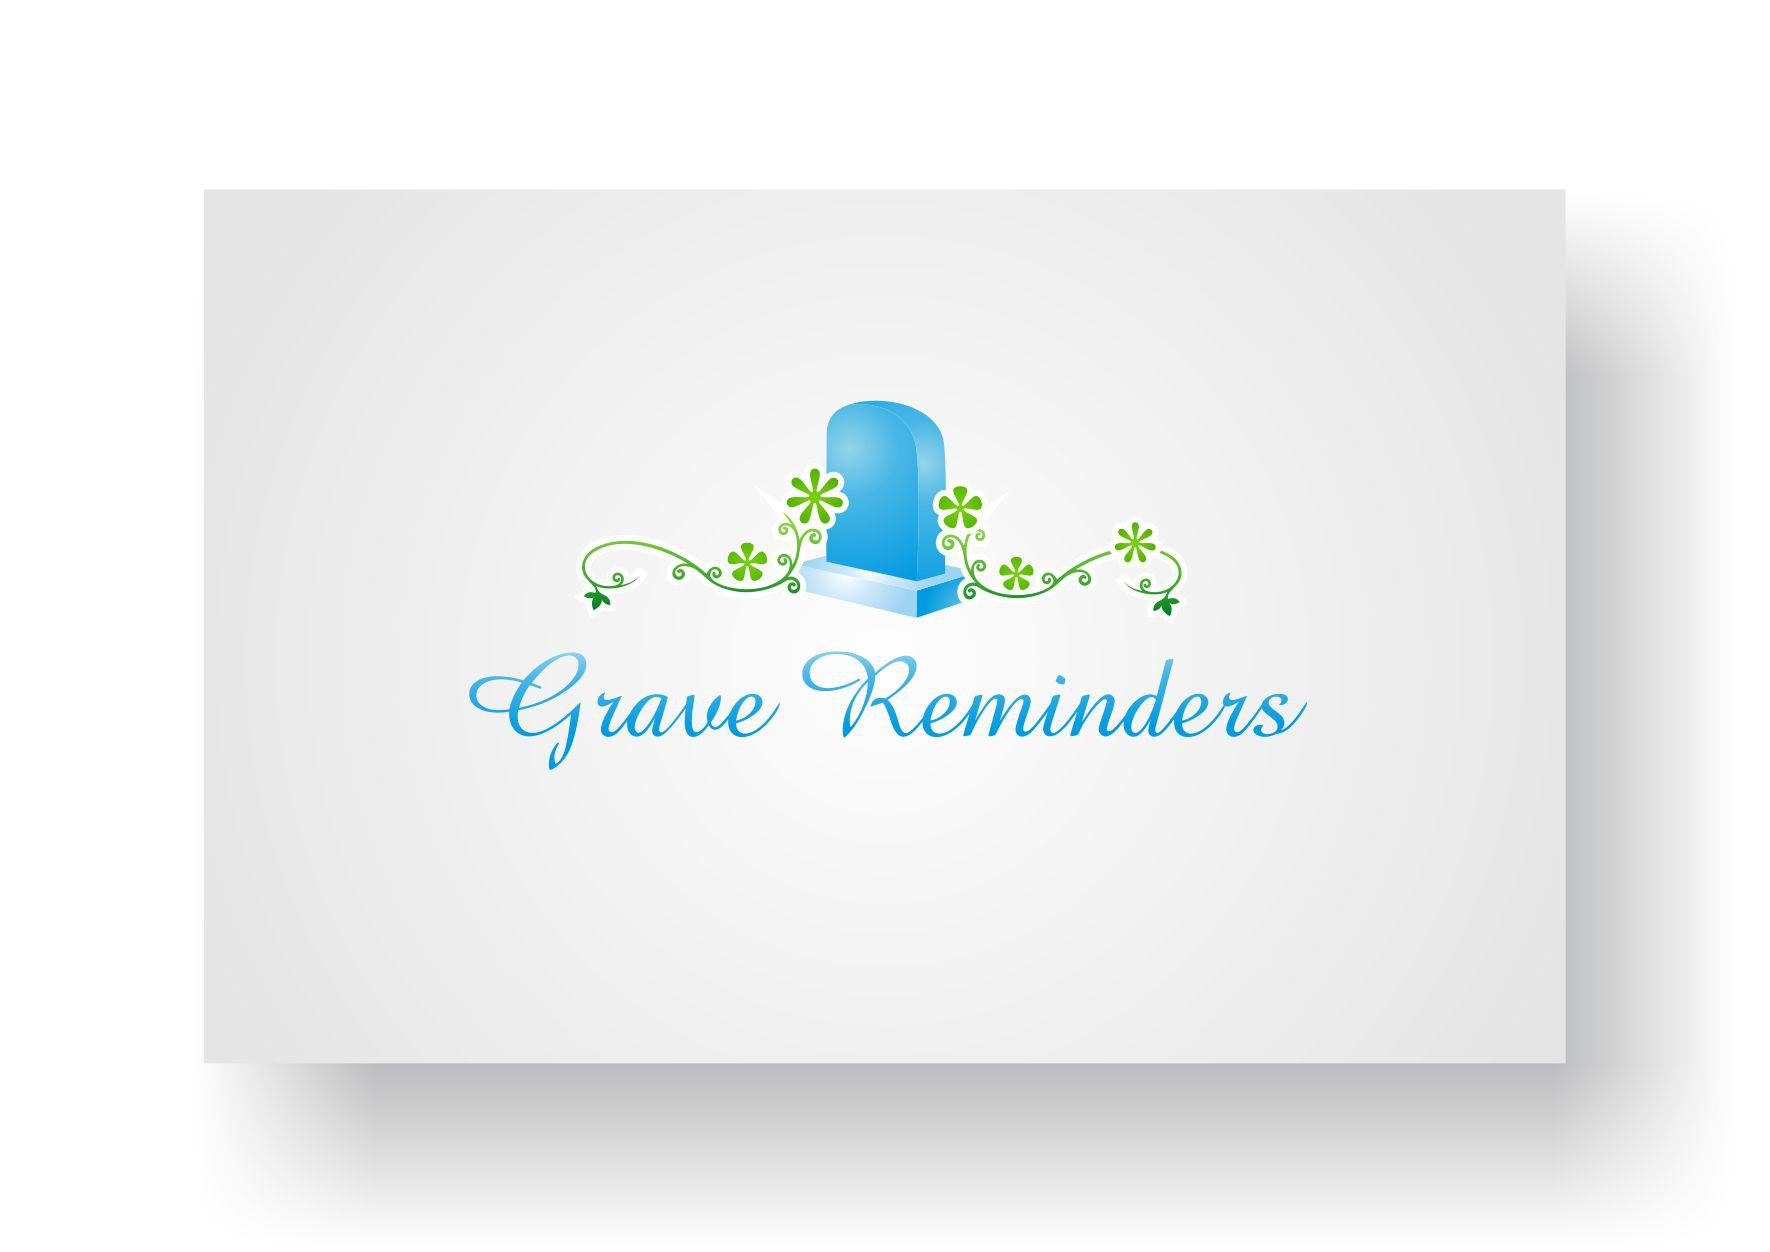 Help Grave Reminders with a new logo